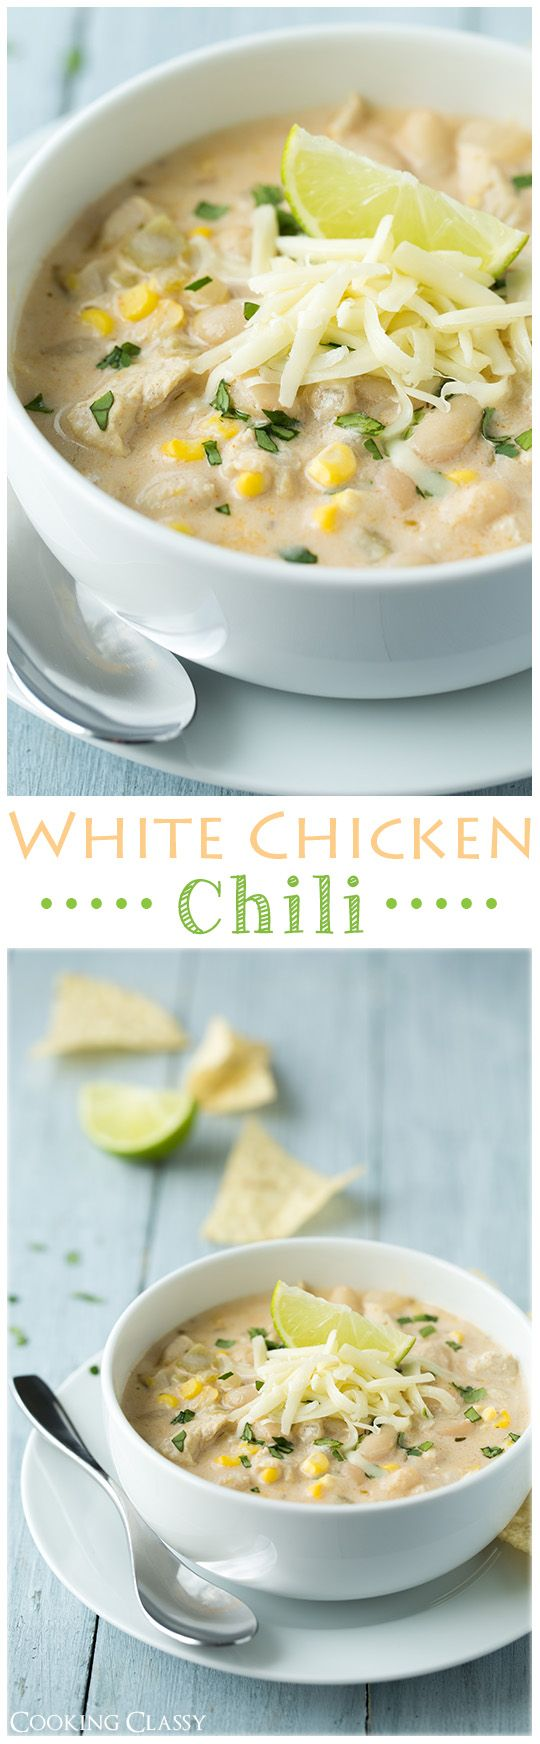 White Chicken Chili - it's creamy and incredibly delicious!